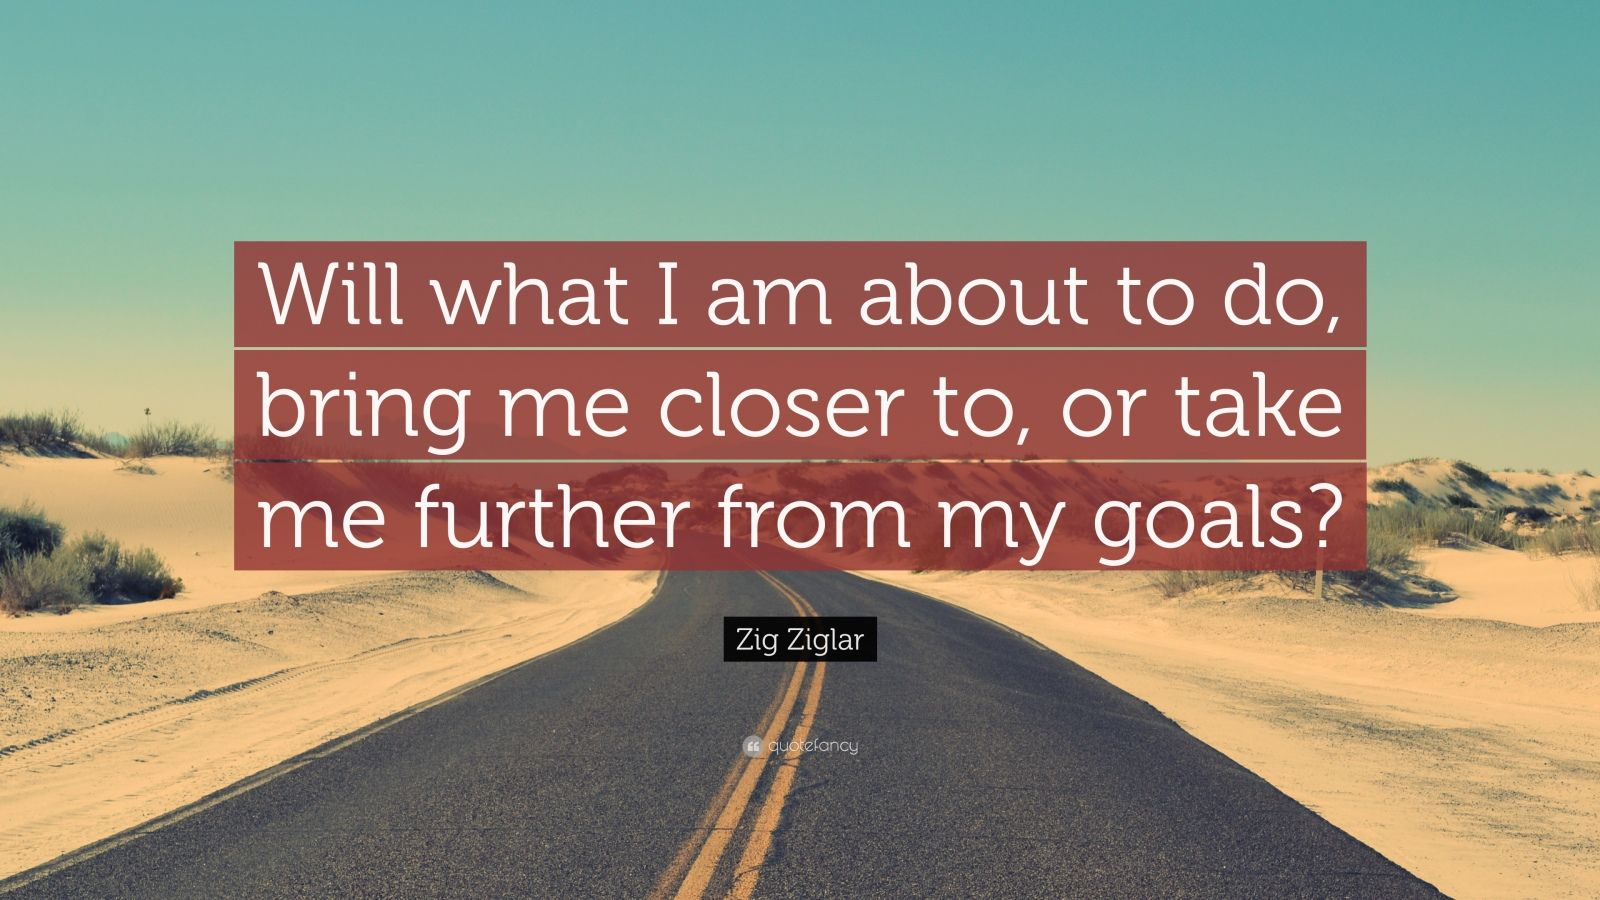 """Zig Ziglar Quote: """"Will what I am about to do, bring me closer to, or take me further from my goals?"""""""